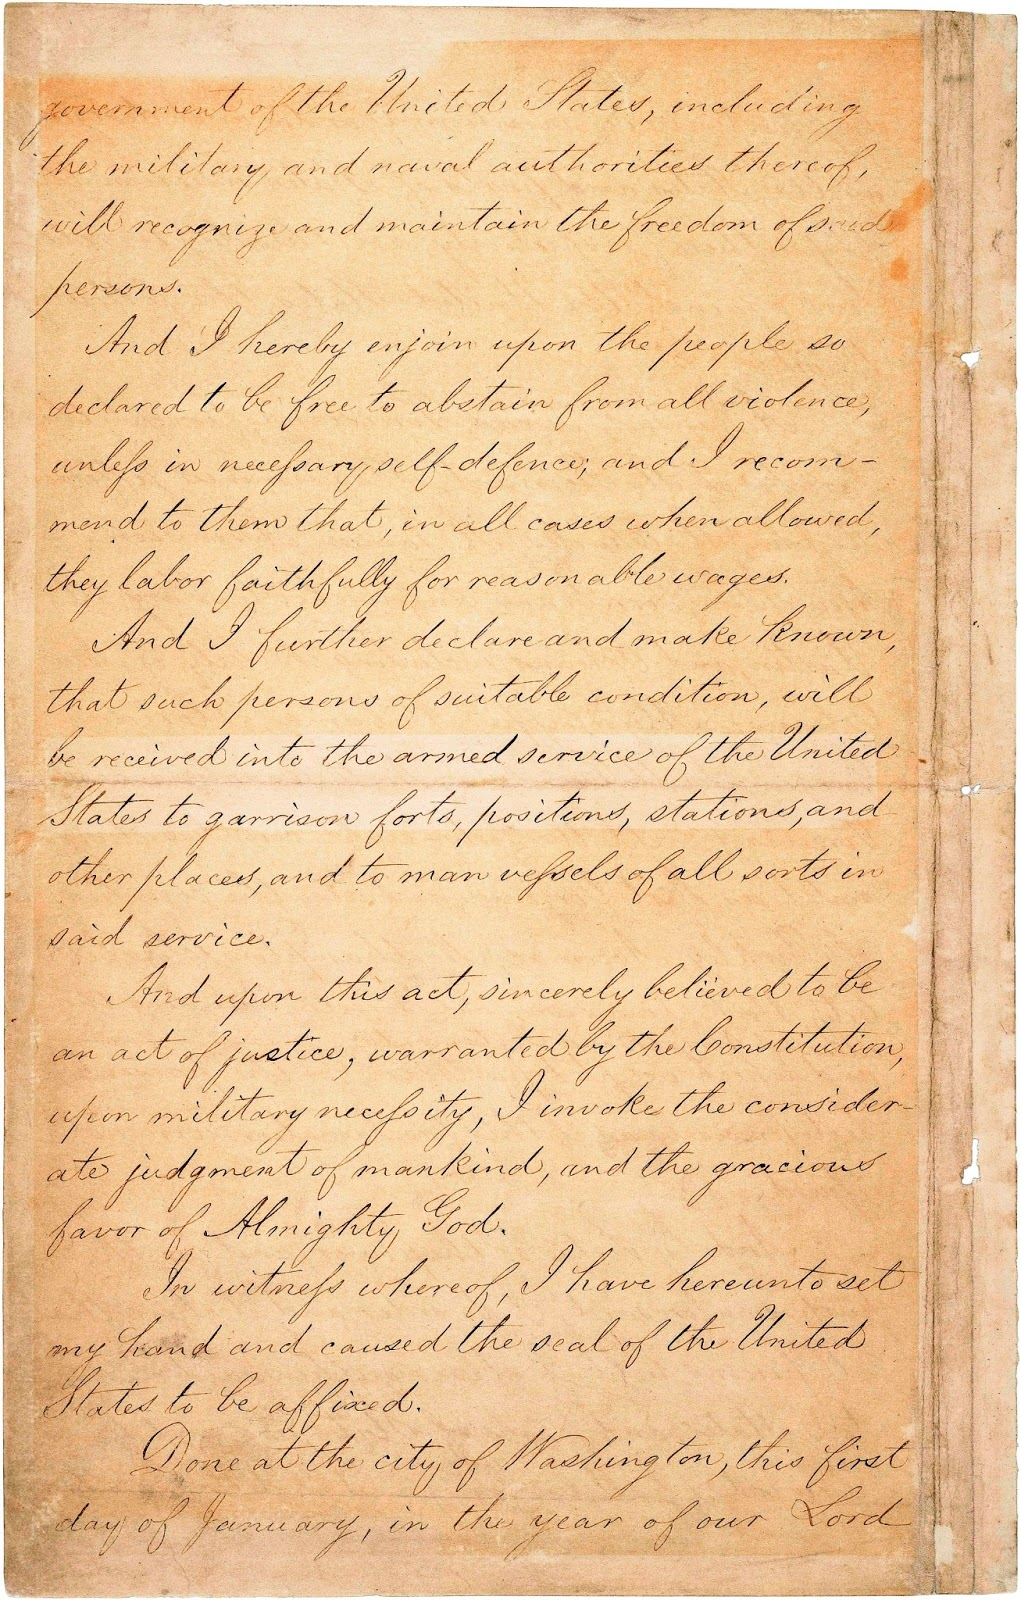 emancipation proclamation essay topics Emancipation proclamation and free slaves 6 pages 1381 words march 2015 saved essays save your essays here so you can locate them quickly.